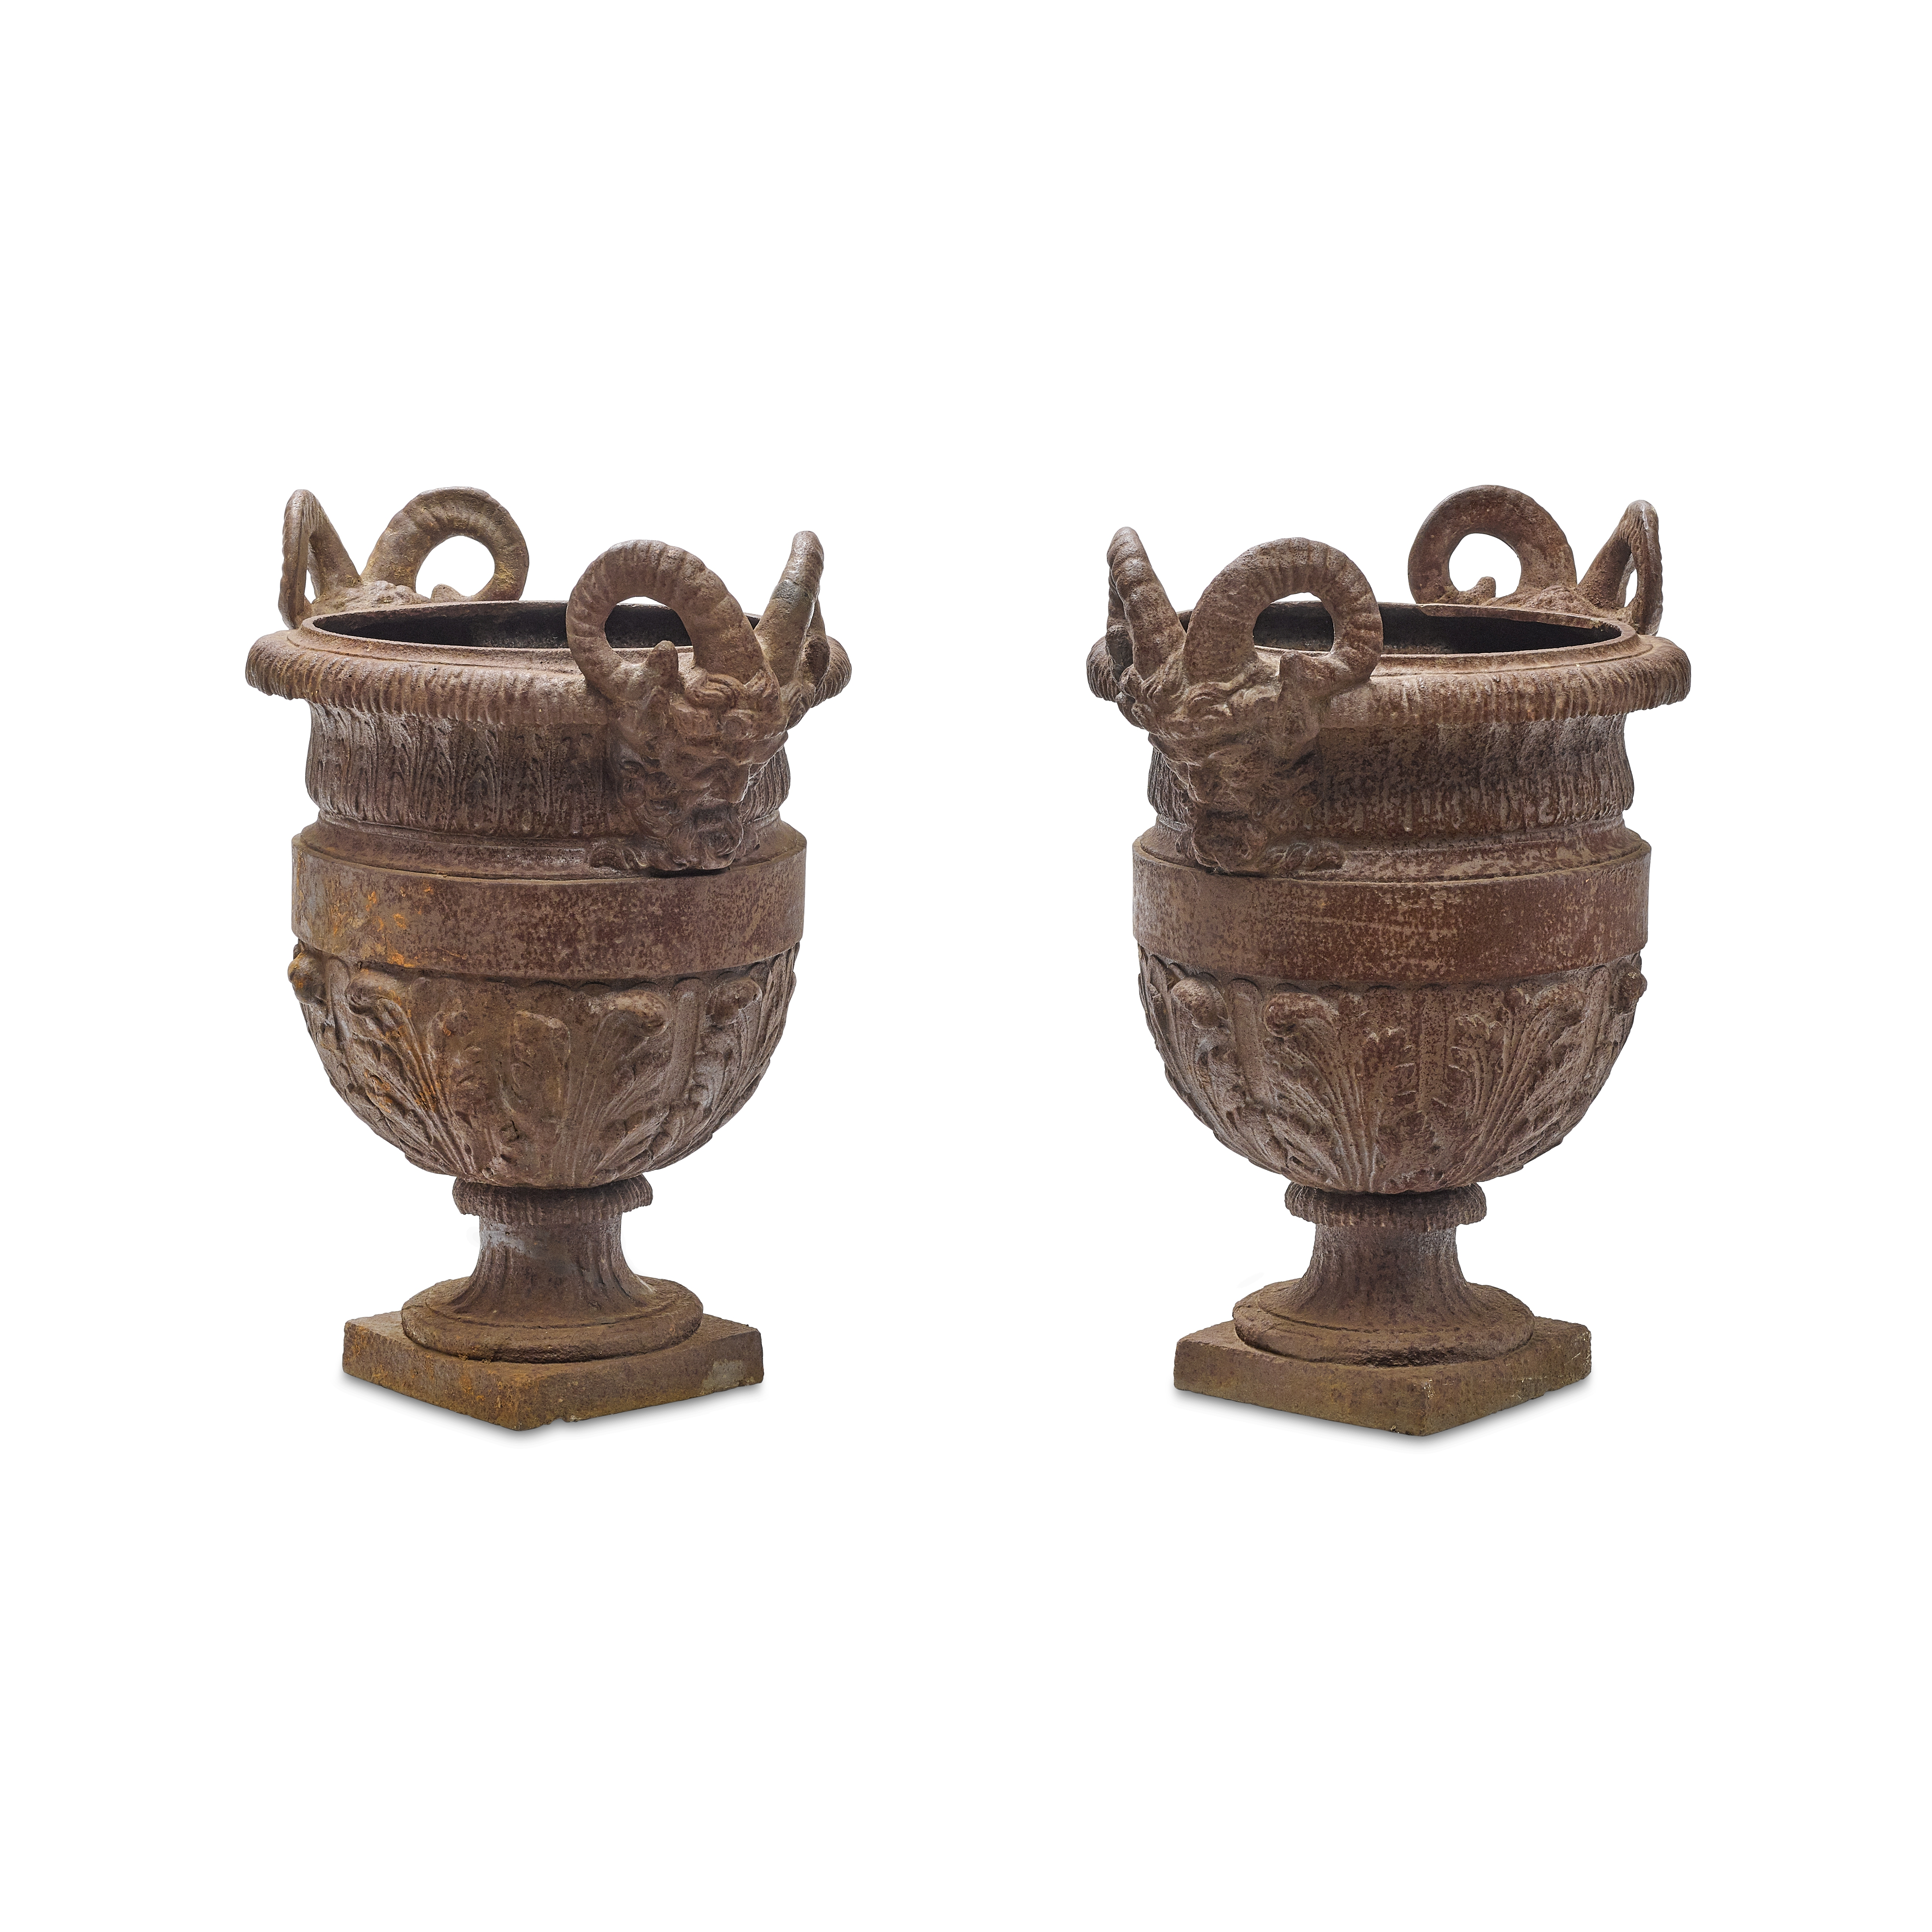 Lot 204 - Pair of Neoclassical Style Patinated Iron Garden Urns